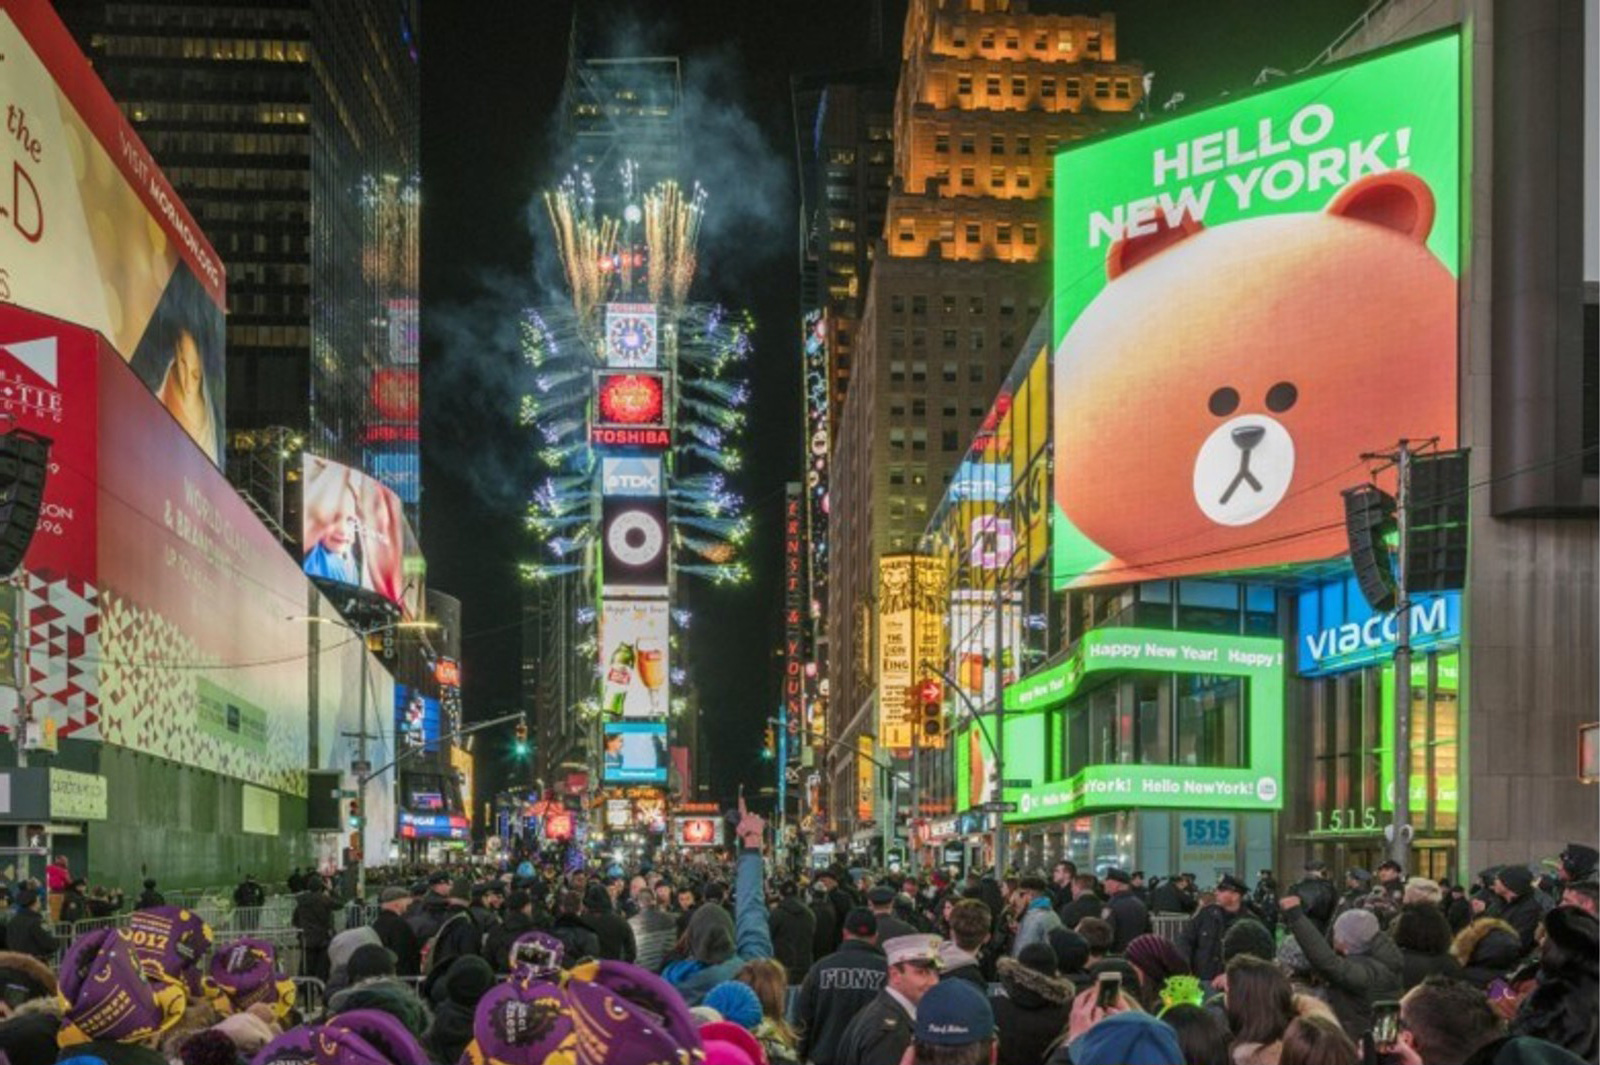 LINE FRIENDS, a global character brand, will open its first official U.S. store (430 square meters) this July in Times Square, New York City